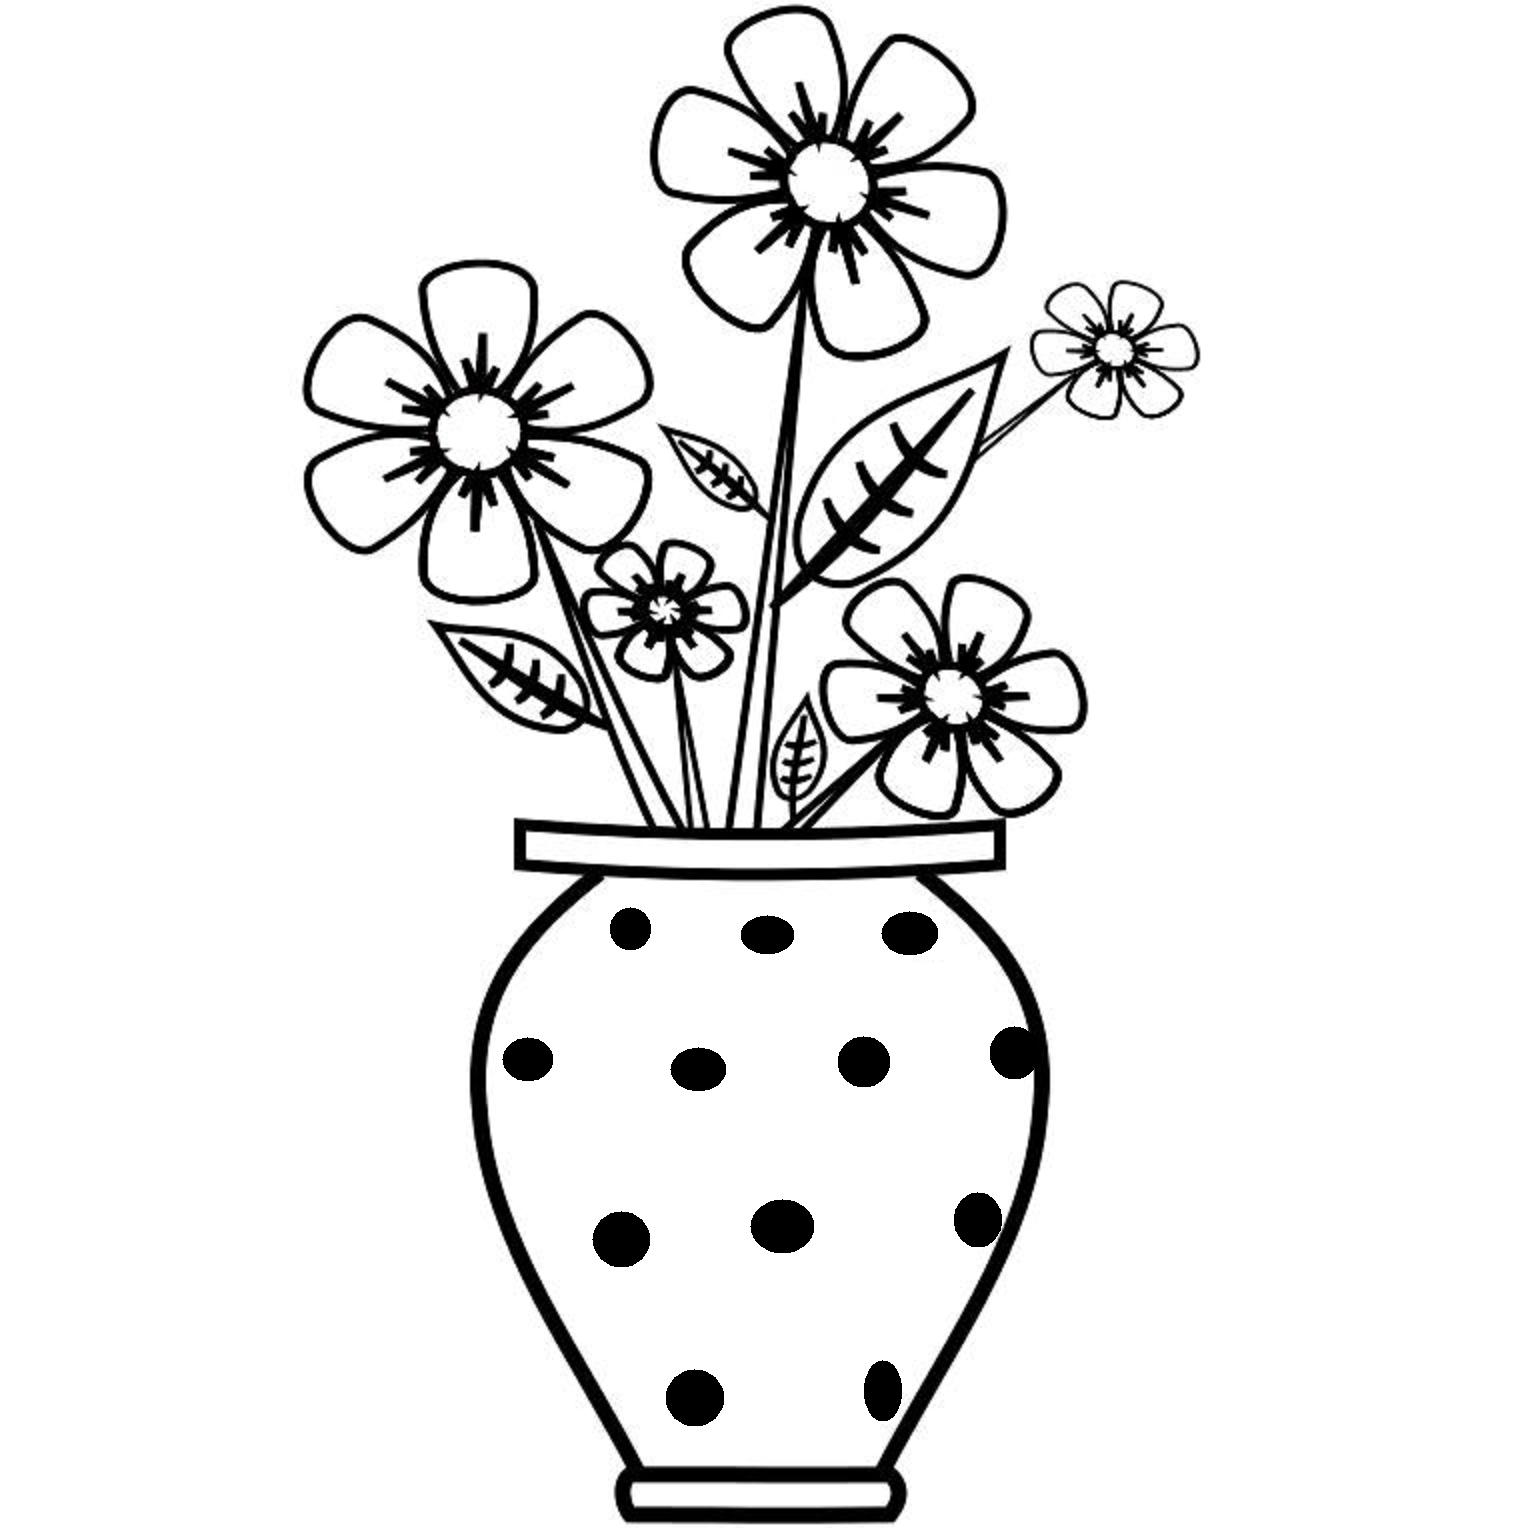 Vases black clipart graphic royalty free download Clipart Black And White Flowers In A Vase - HD Image Flower ... graphic royalty free download